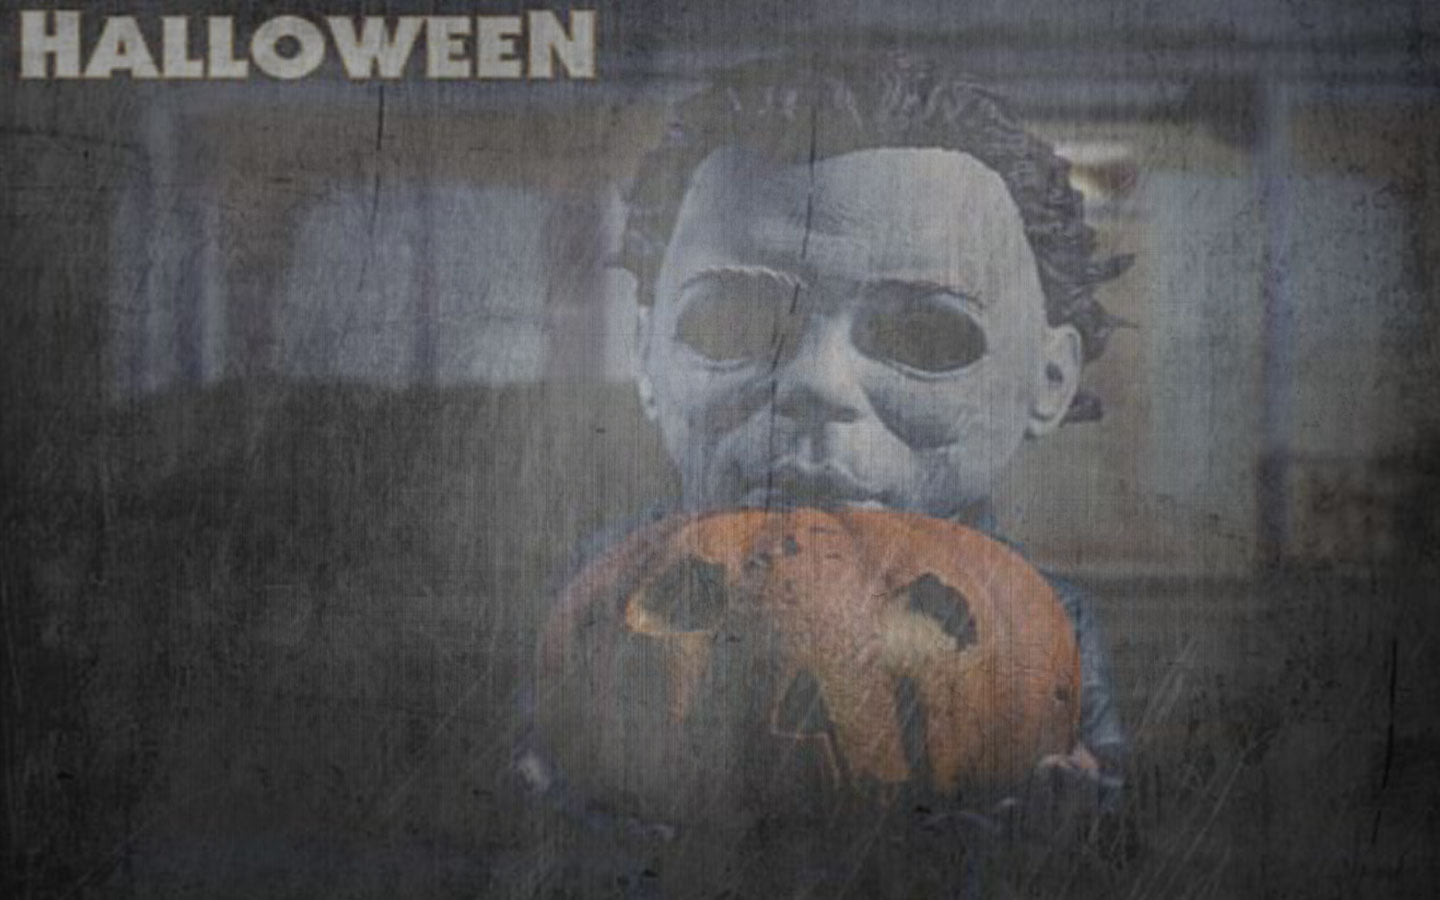 jps bears michael meyers halloween